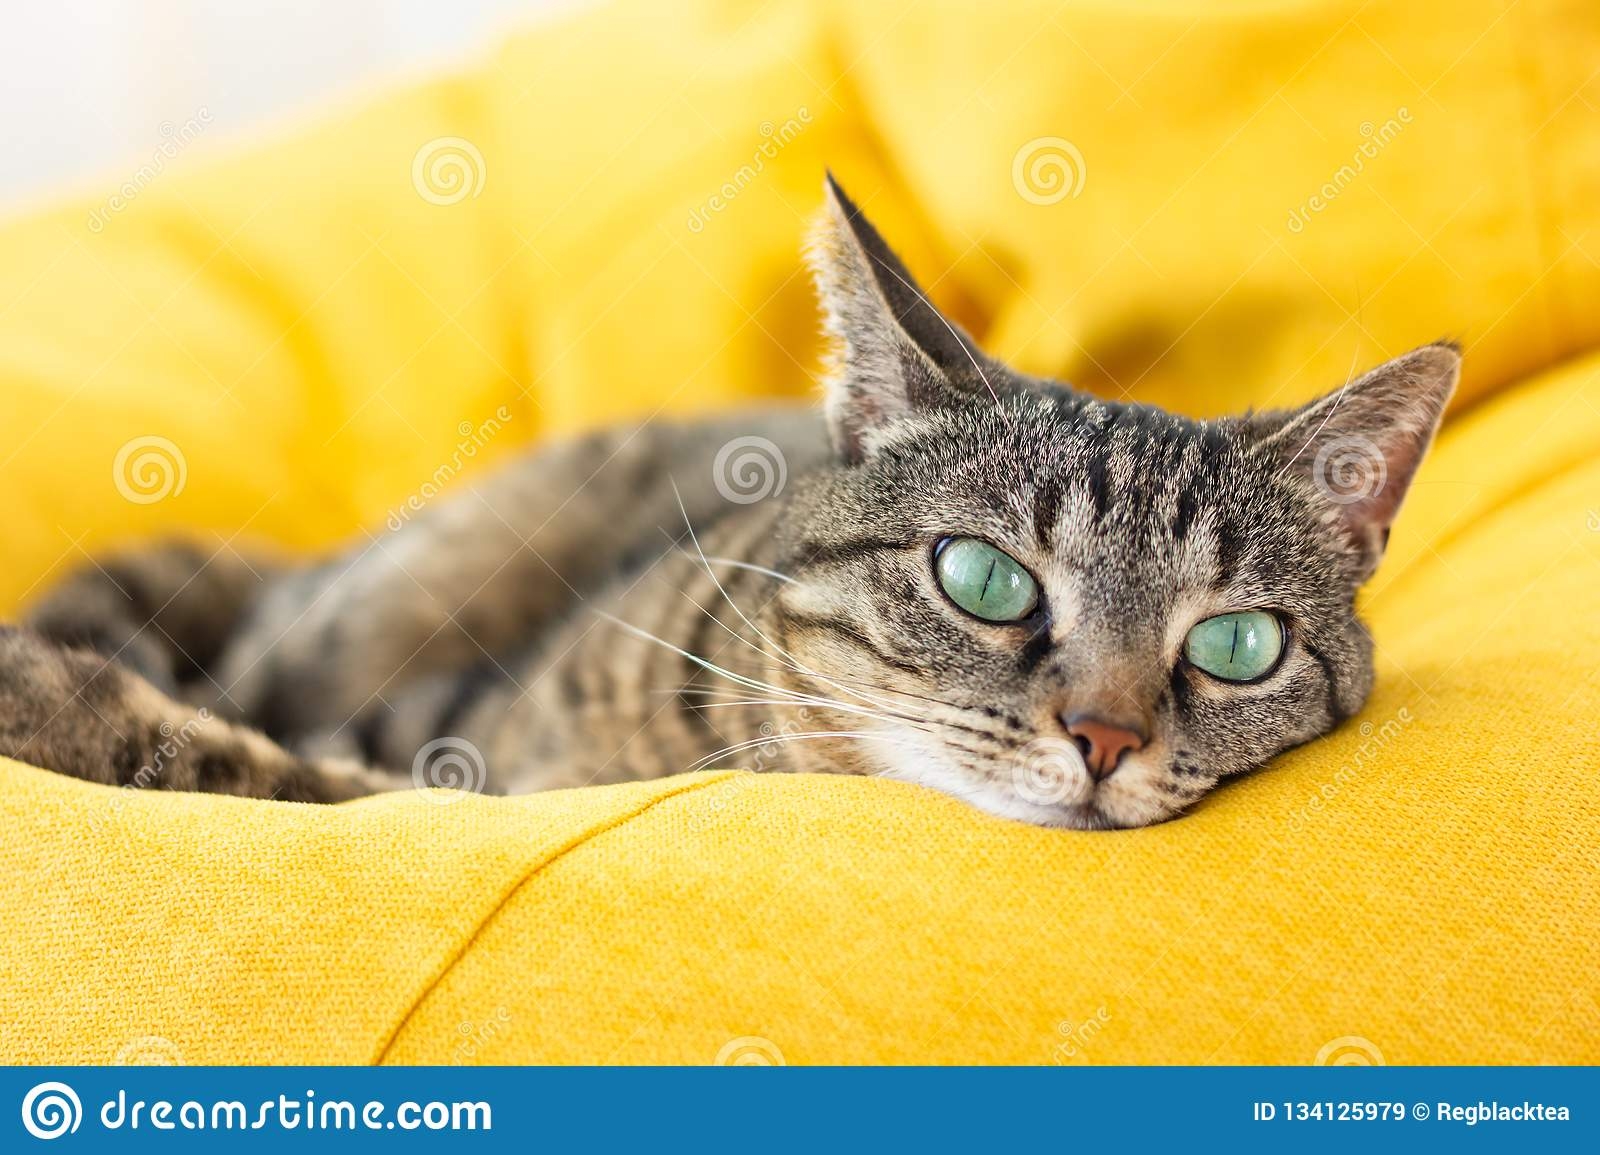 Cute tabby cat with green eyes lies on yellow bean bag.